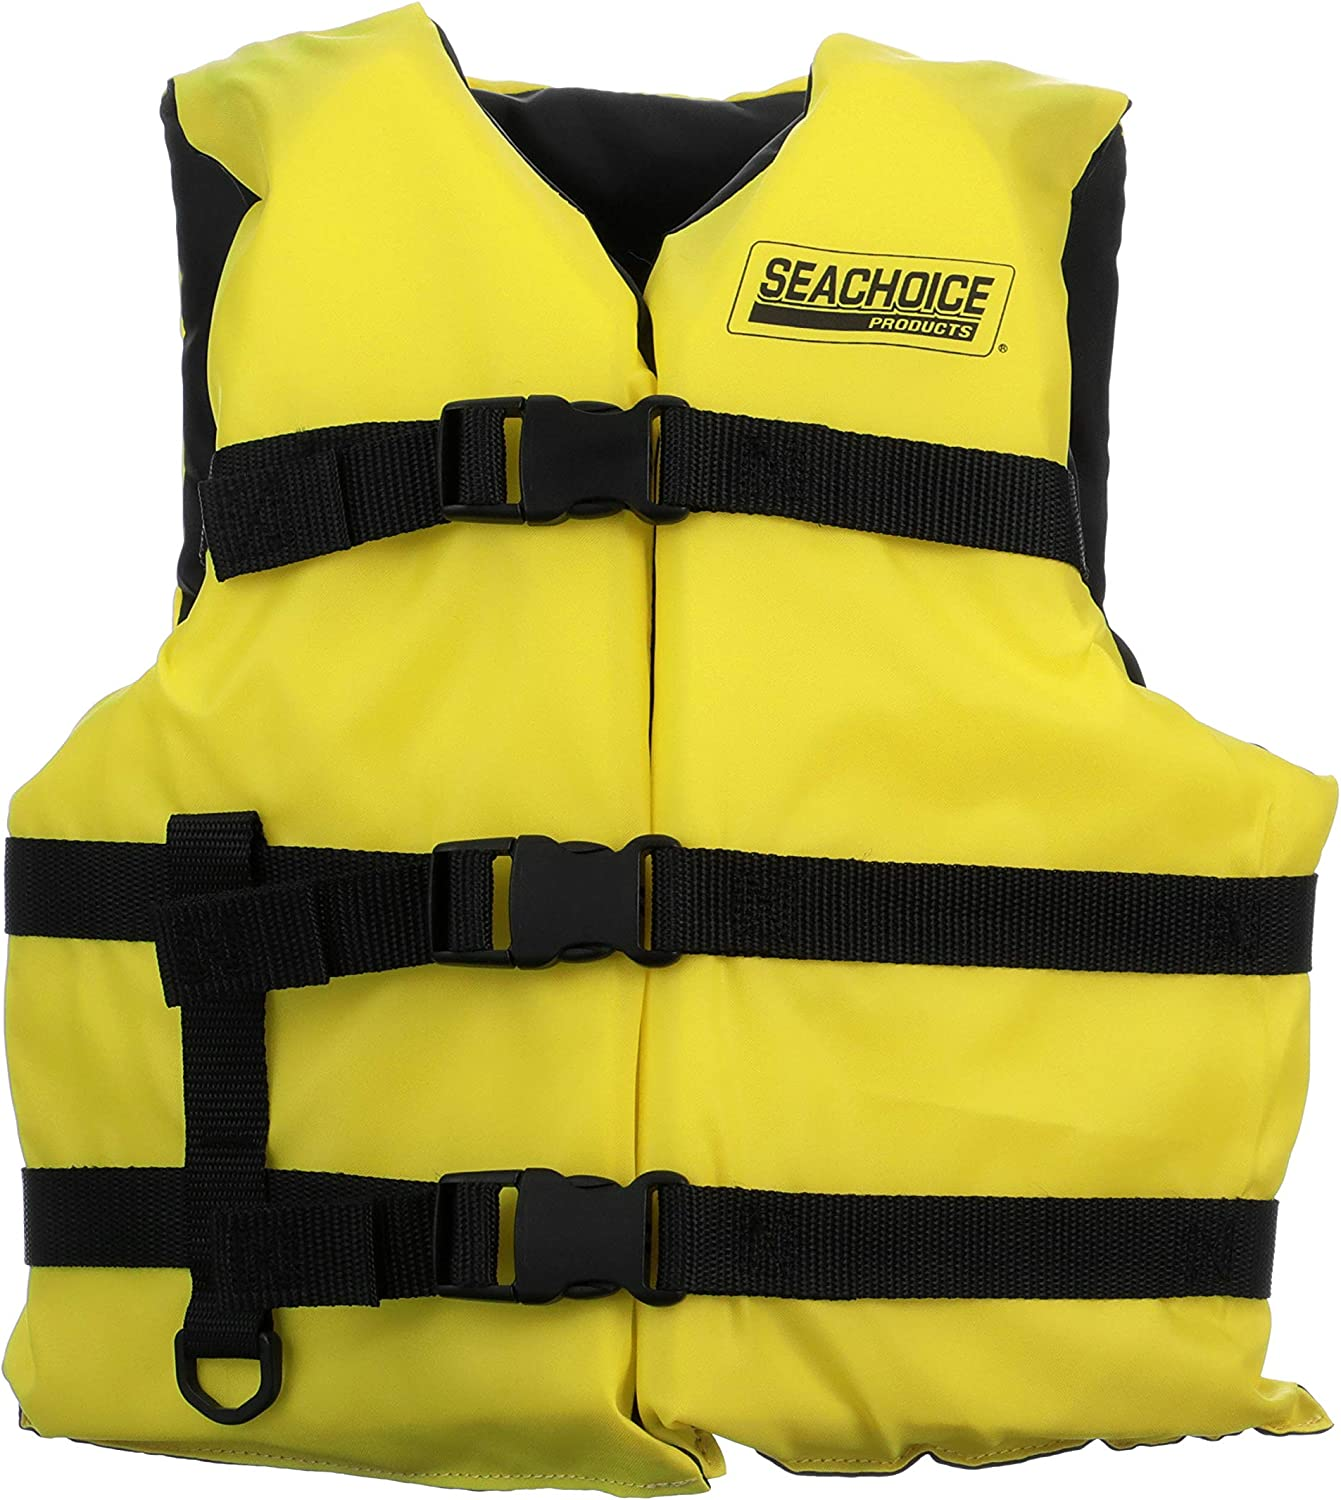 Amazon Com Seachoice 86520 Type Iii Life Jacket Adjustable General Purpose Vest Bright Yellow Youth 50 To 90 Pounds Boating Equipment Sports Outdoors